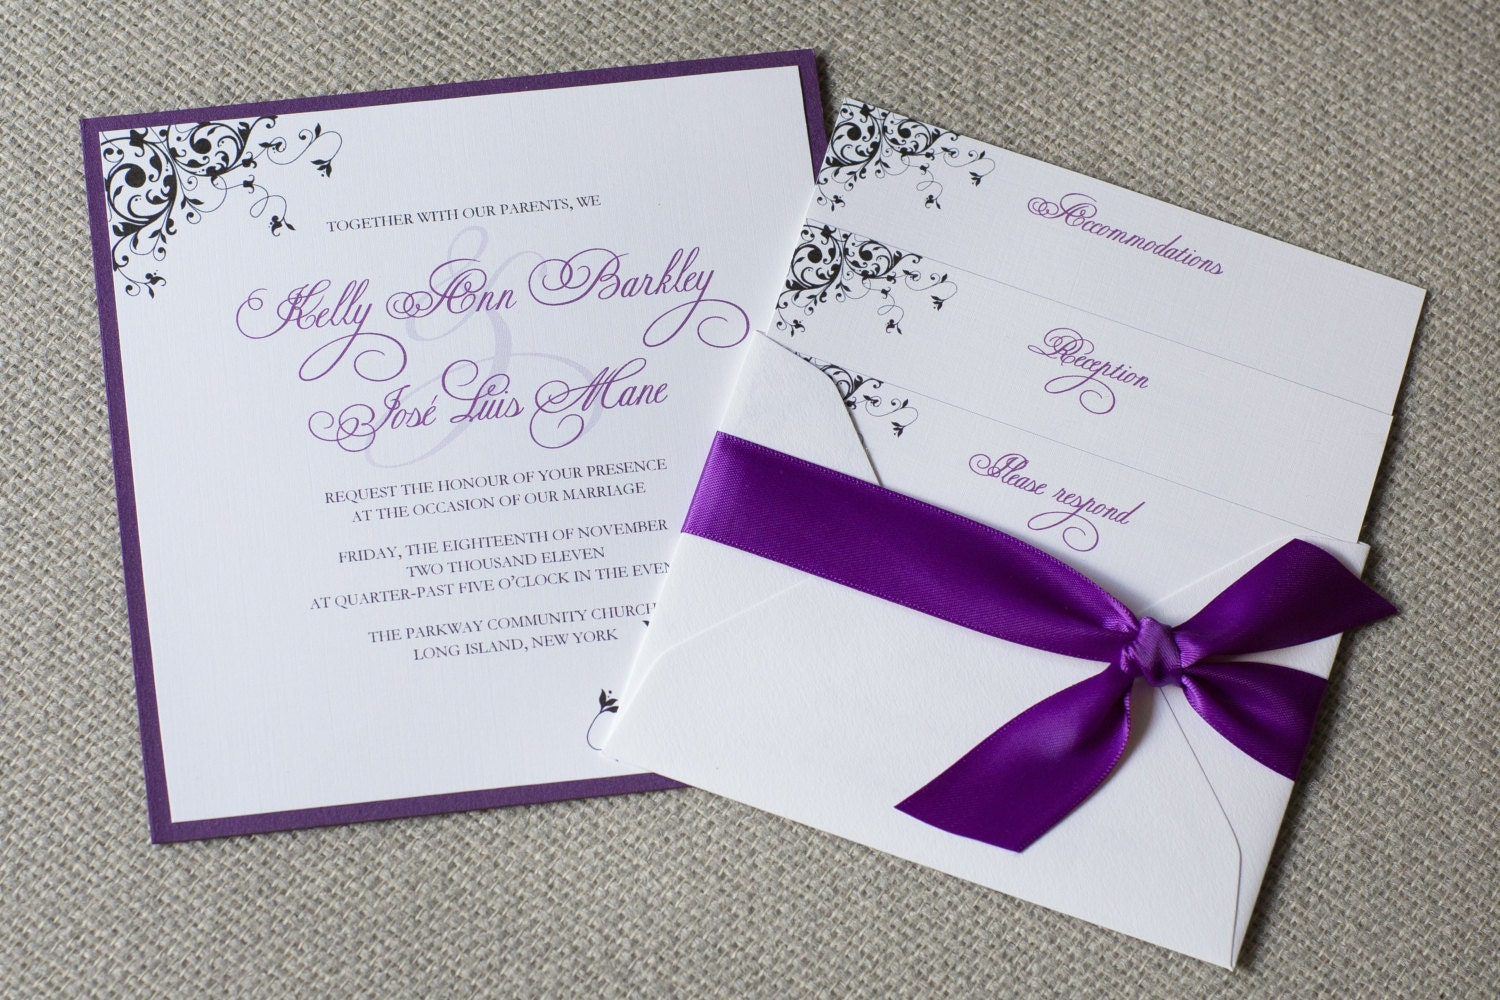 Wedding Invite Enclosures was luxury invitation layout